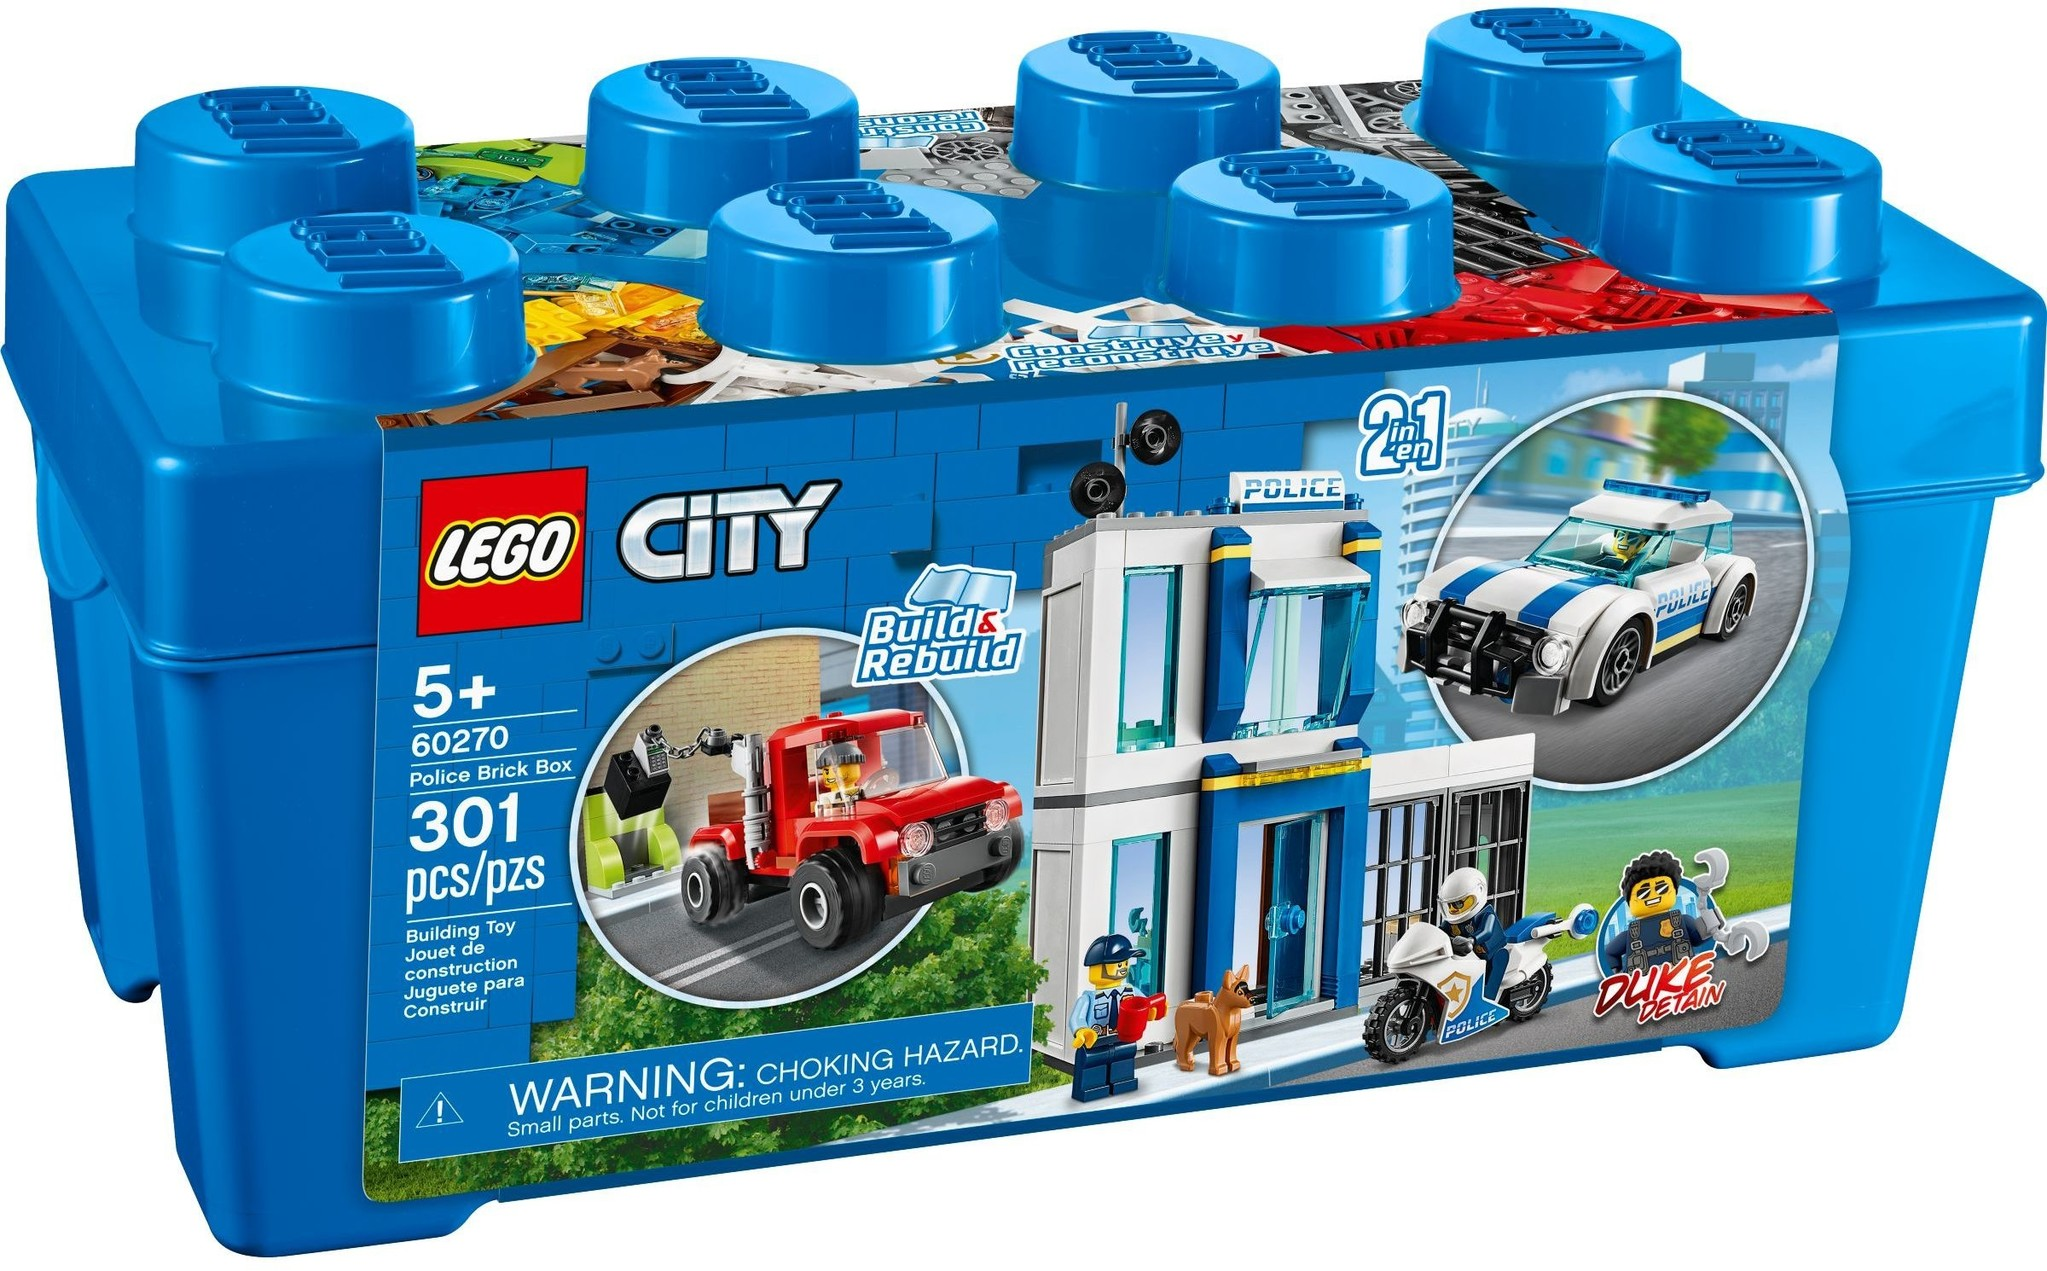 Police Brick Box The Toy Store